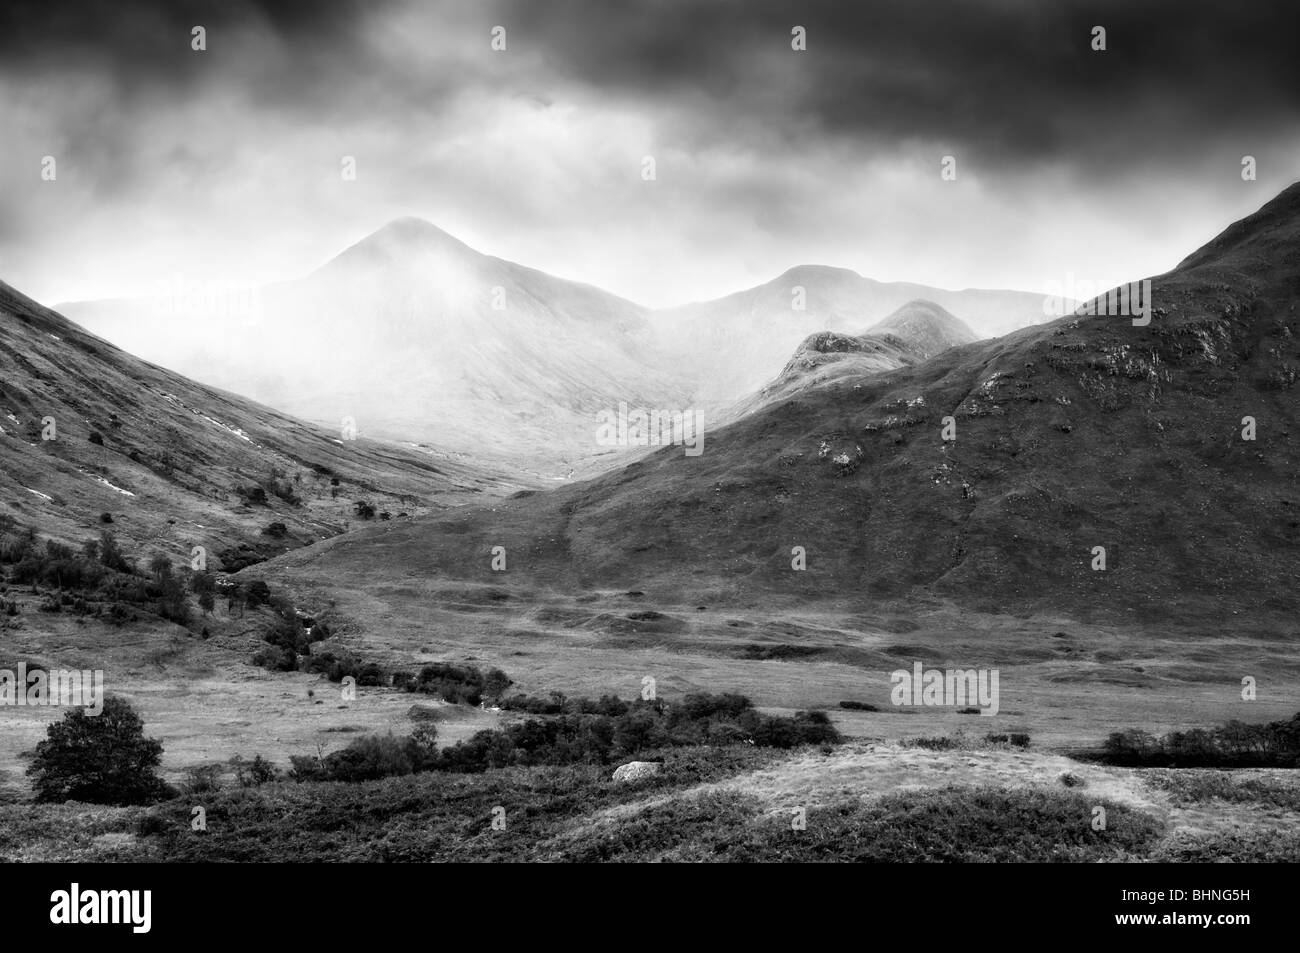 Black and white picture of Glen Etive, Glencoe region in Scotland with mist and rain coming in, taken in early autumn - Stock Image